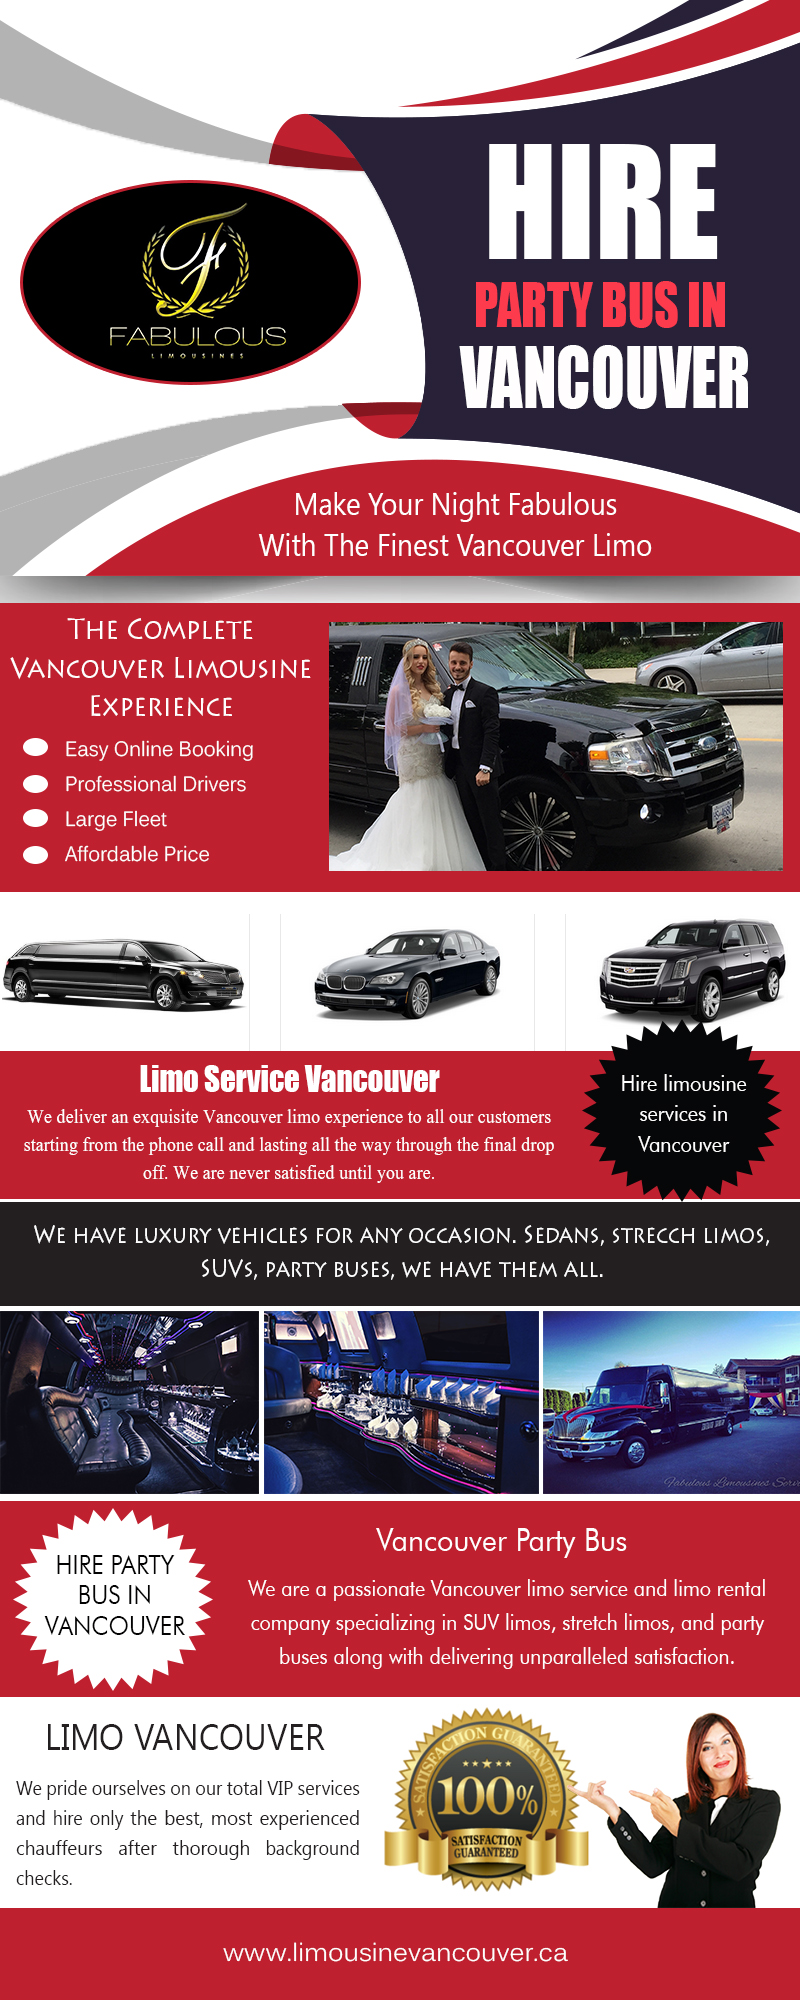 Hire Party Bus in Vancouver